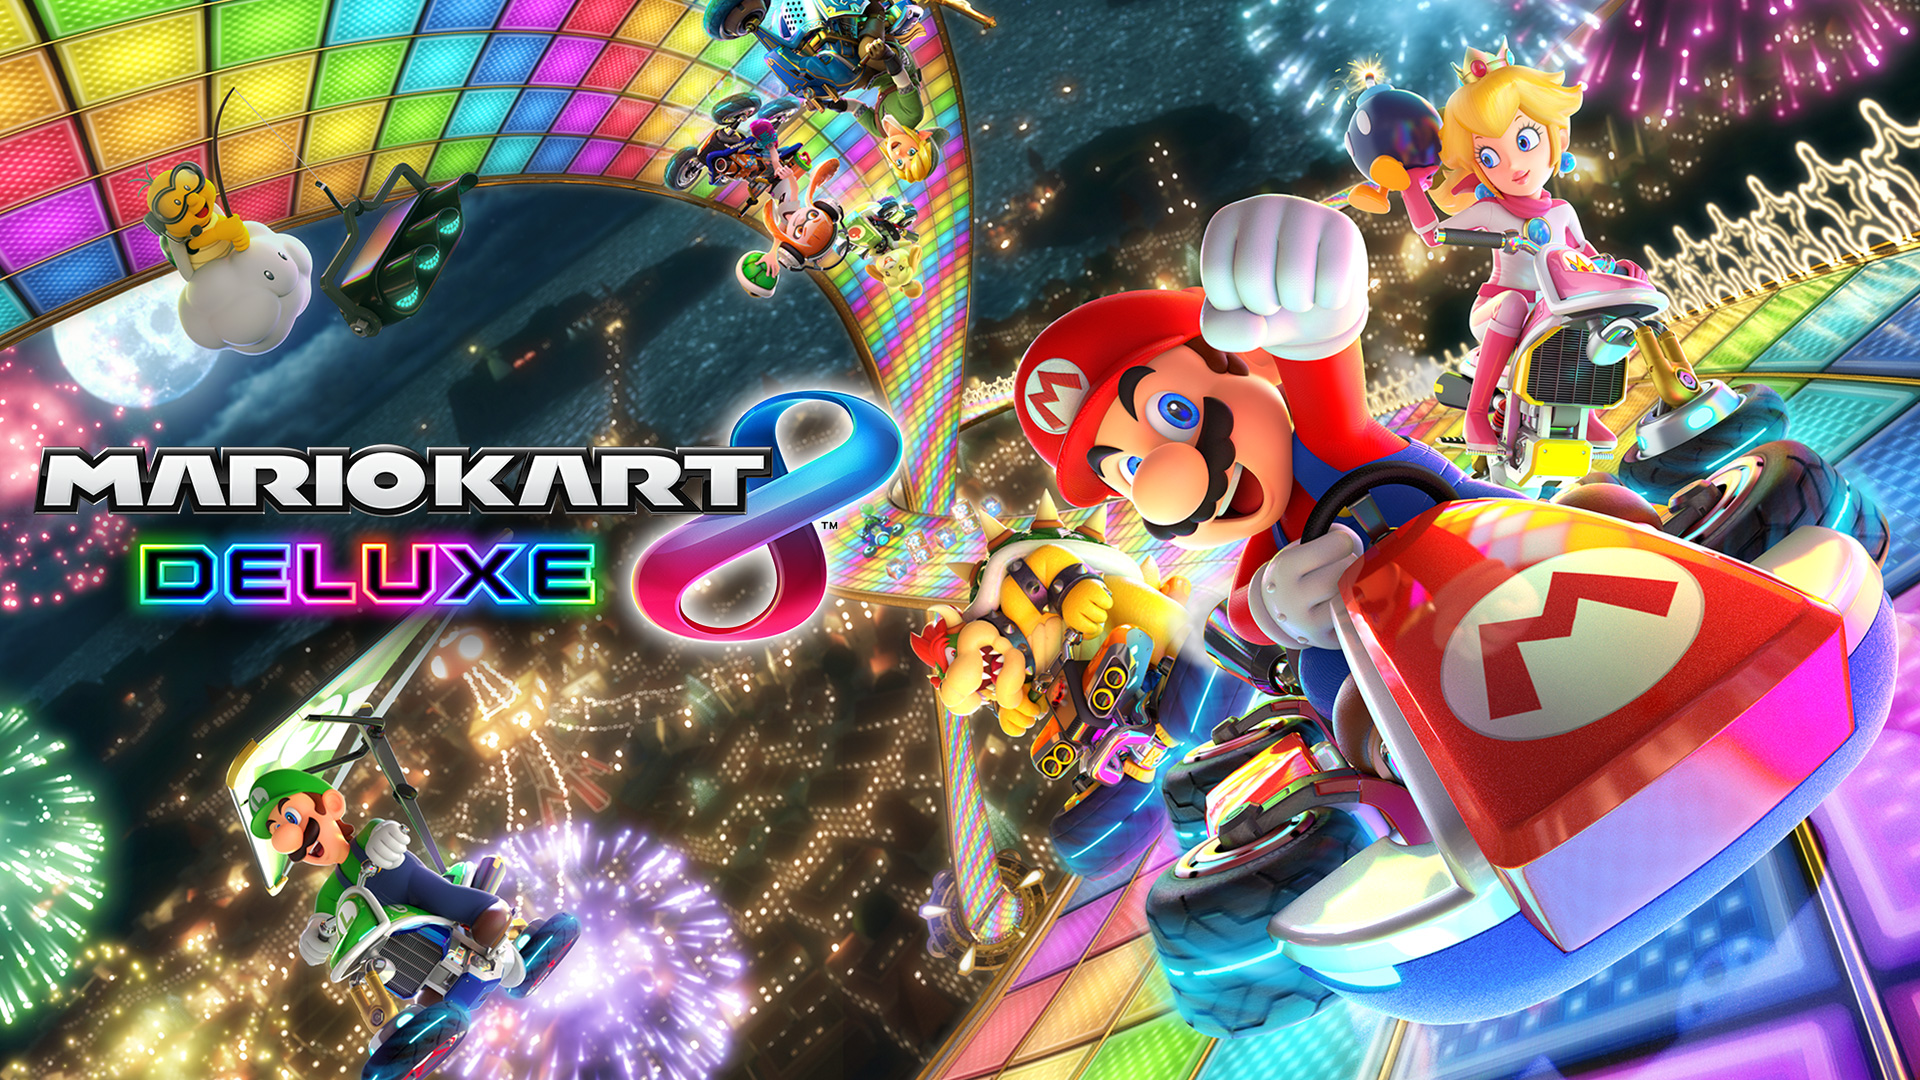 Caption: Cover art for Mario Kart 8 Deluxe.  The game's original soundtrack was composed by members of Nintendo's sound team, including Shiho Fujii, Atsuko Asahi, and many others, and was performed by the Mario Kart Band.